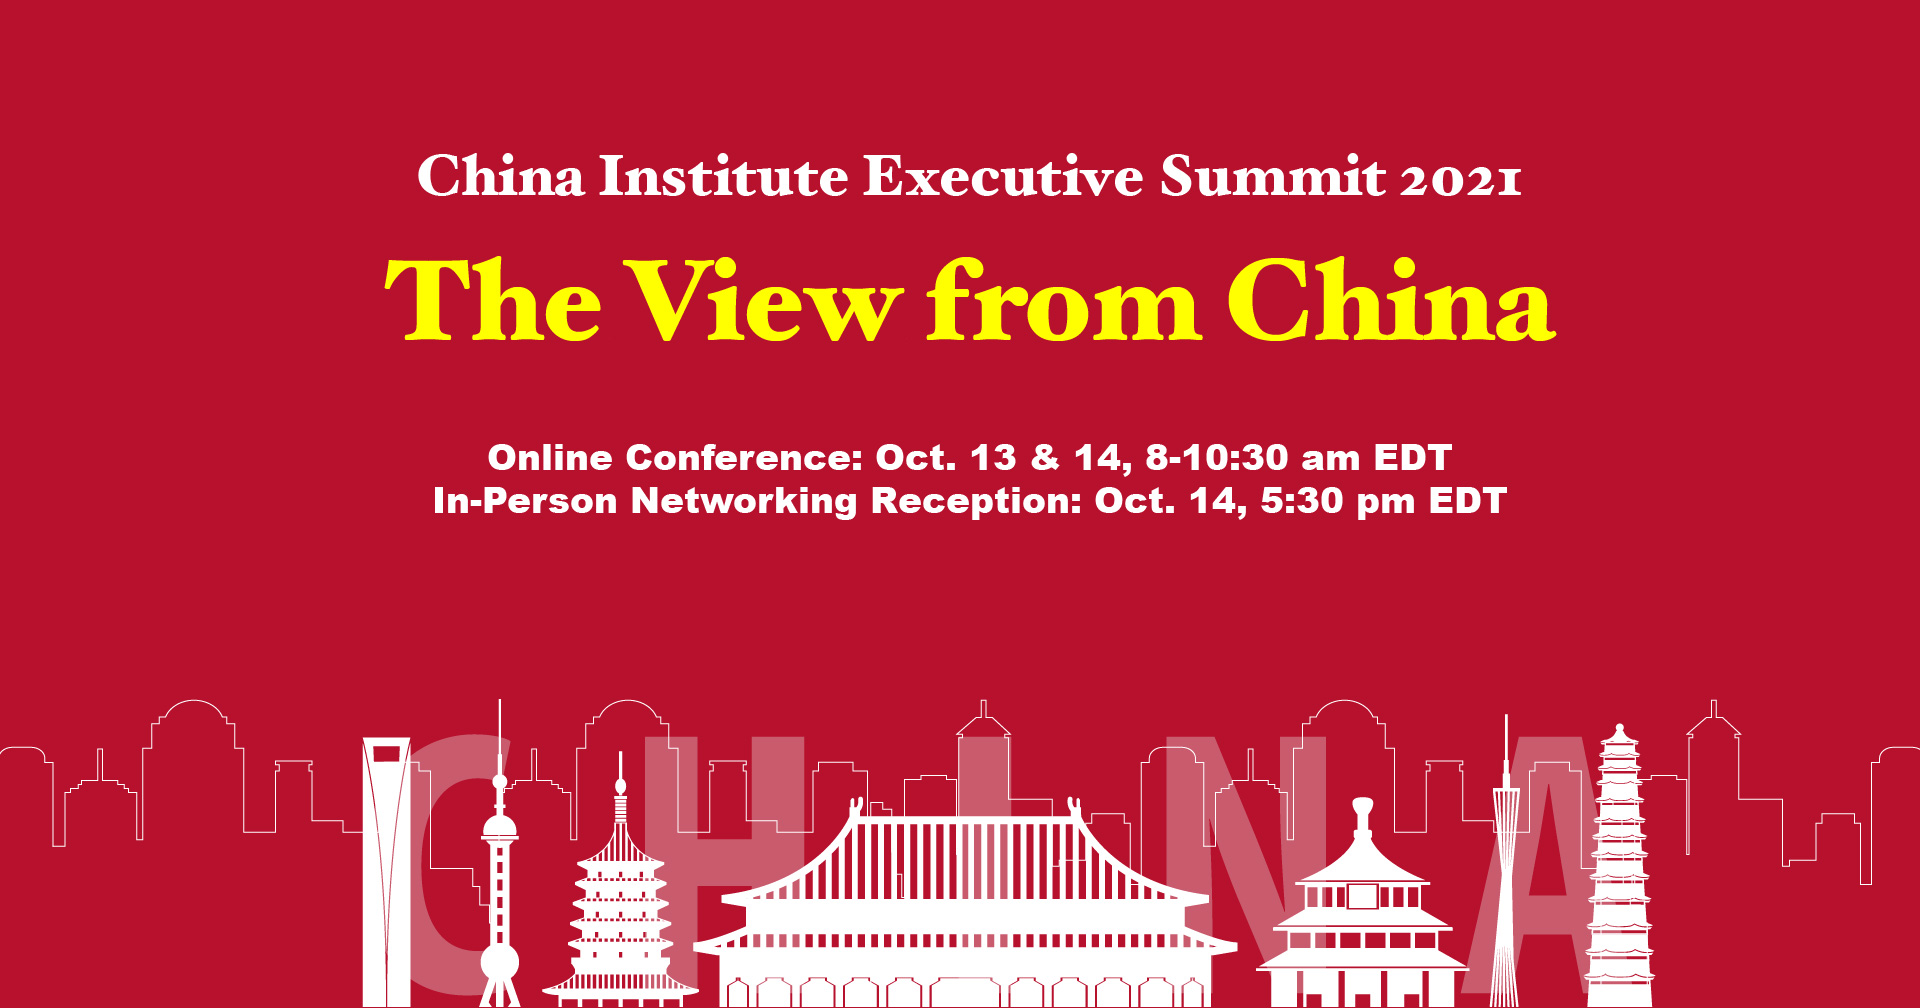 China Institute Executive Summit Offers the View From China  Often-Overlooked in the U.S., Influential Voices from China to Be Heard October 13-14